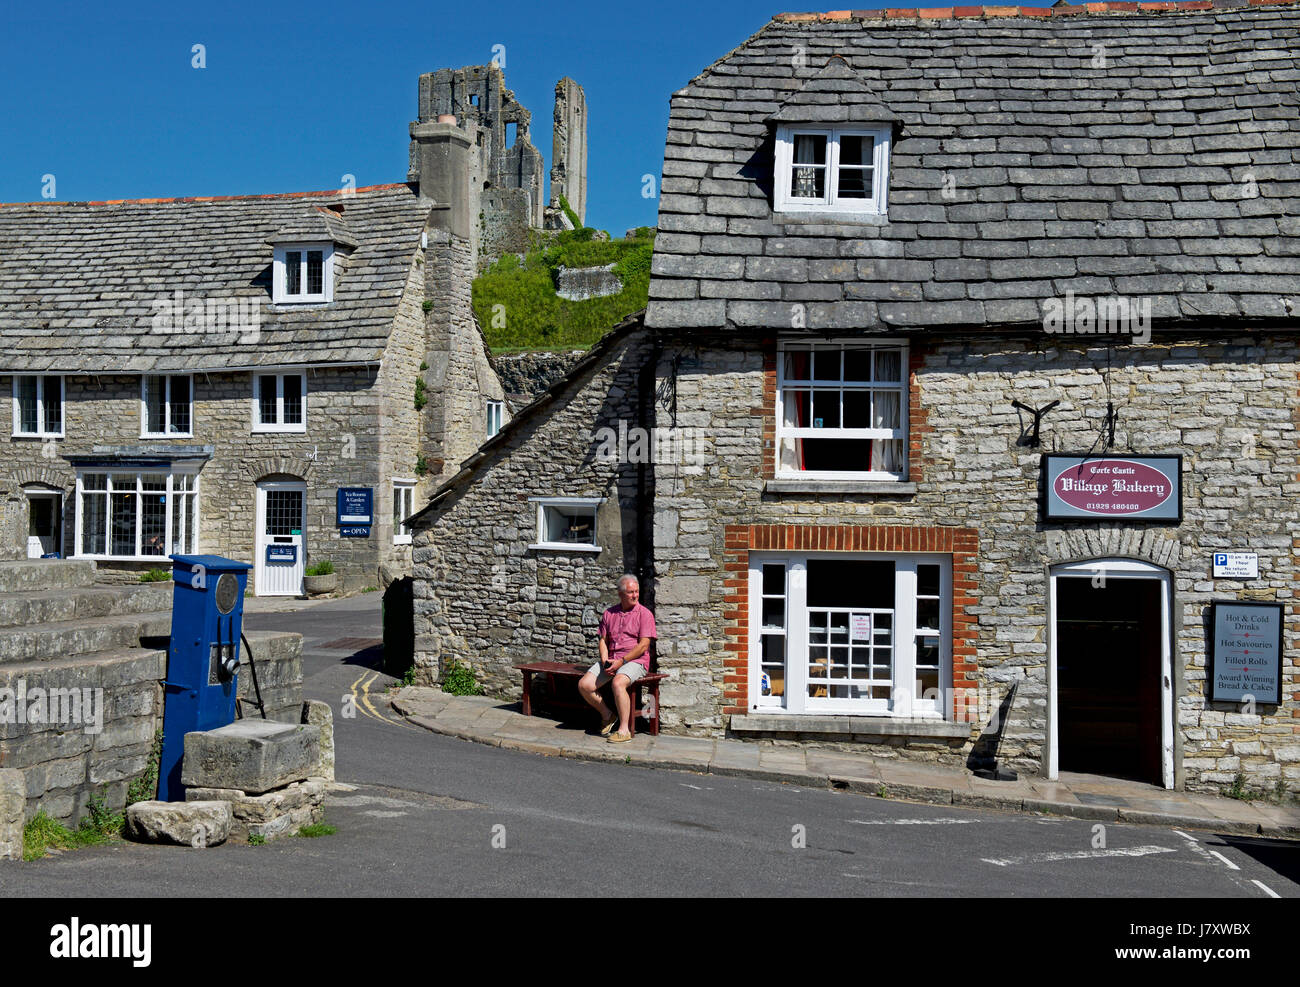 Man relaxing on bench in the village of Corfe Castle, Dorset, England UK - Stock Image